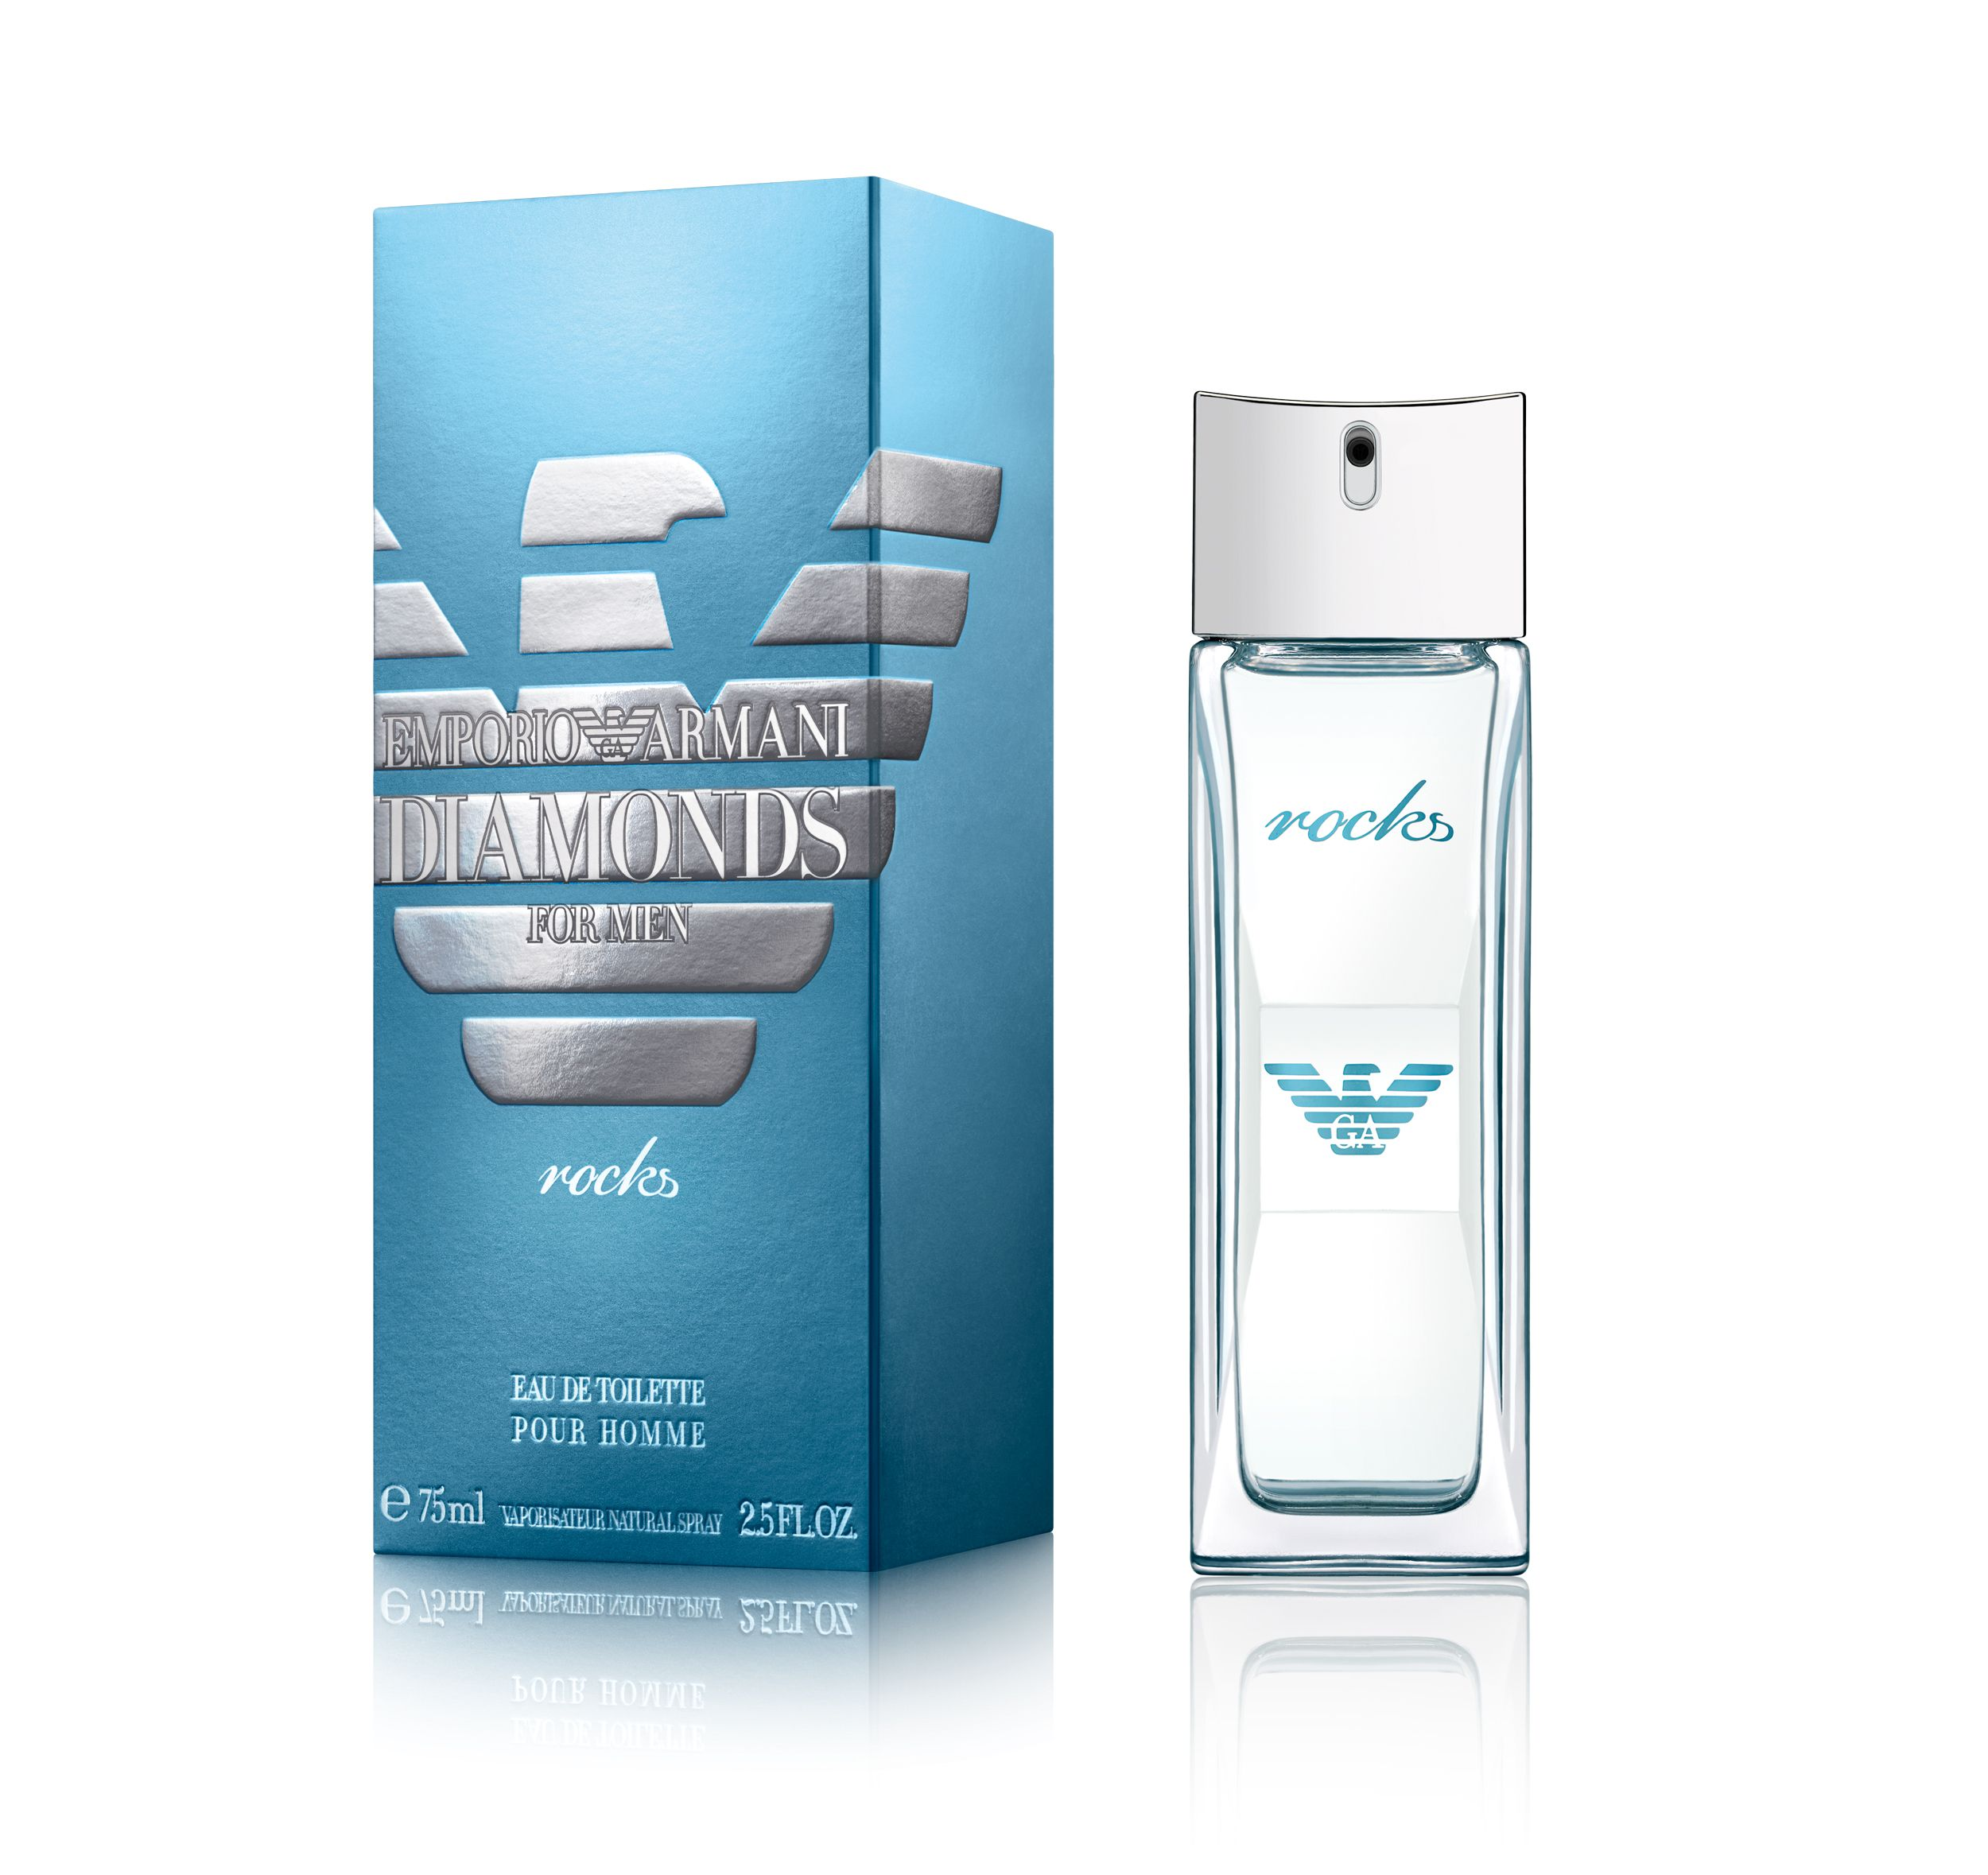 Emporio Armani Parfums Emporio Armani Parfums Diamonds Rocks Eau de Toilette 75ml